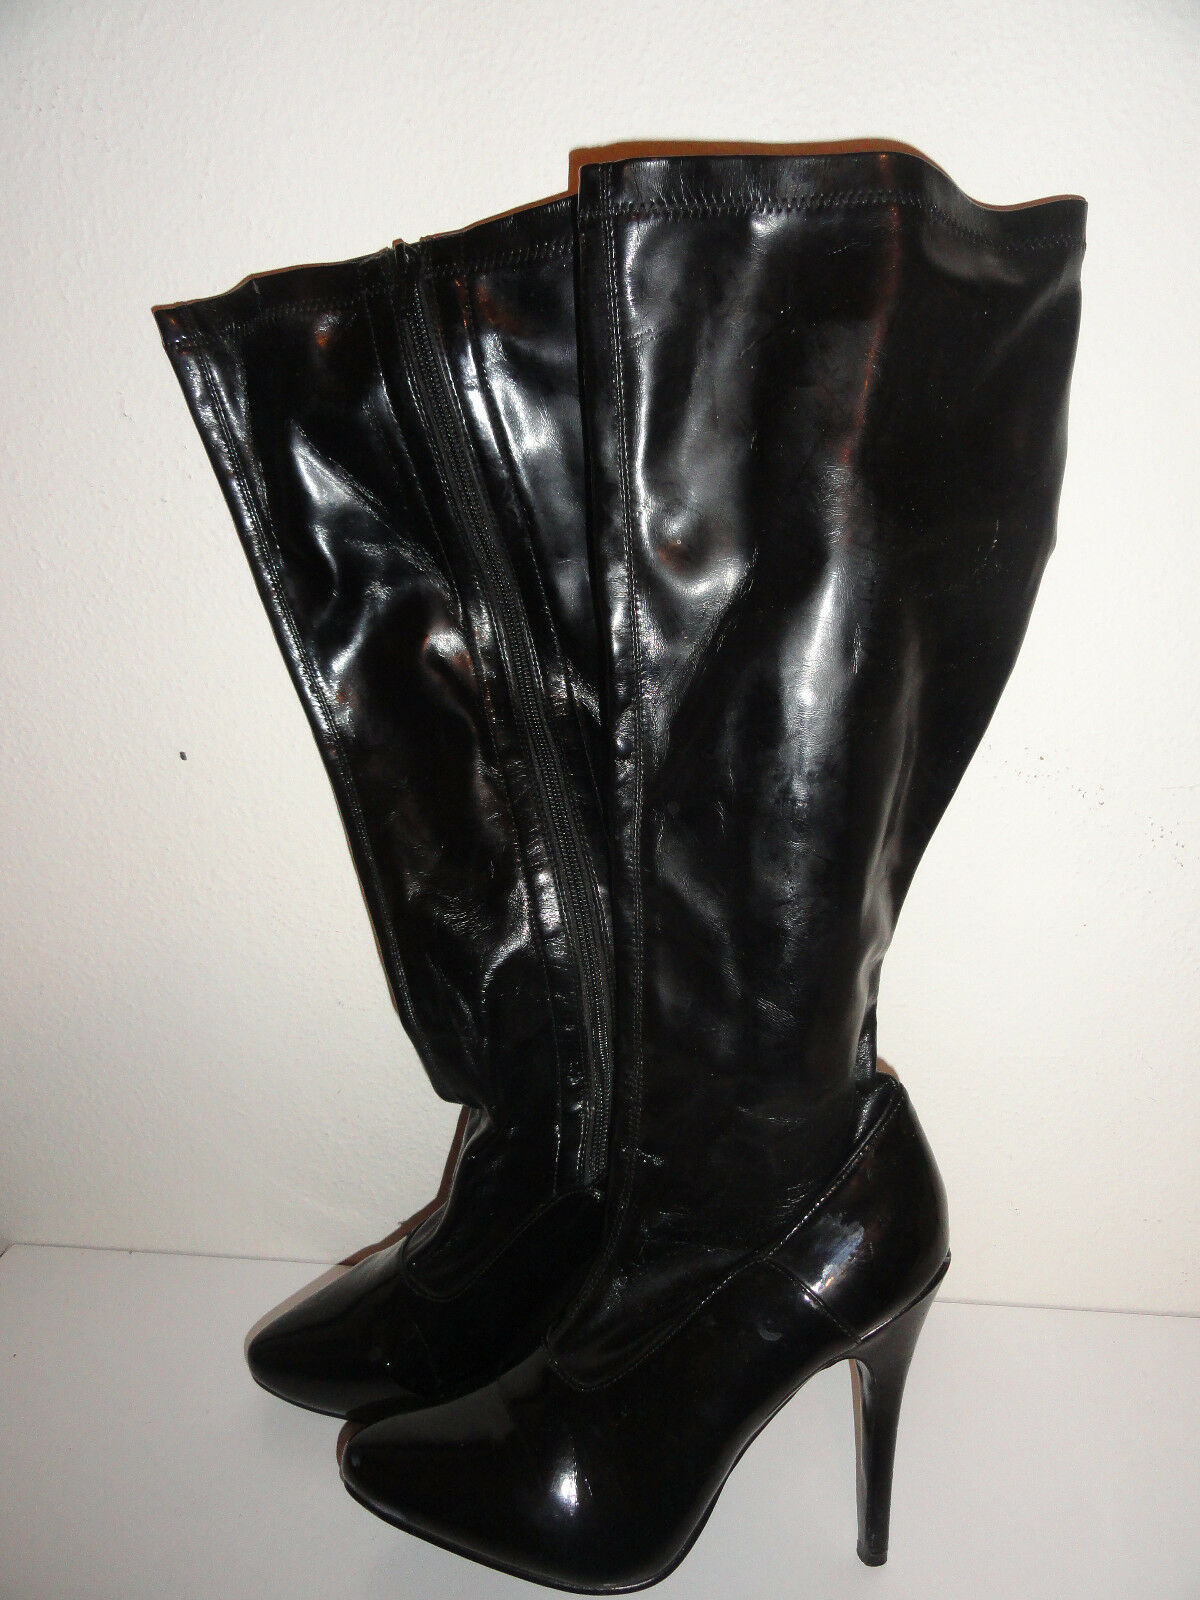 WOMEN'S BLACK ZIPPERED KNEE HIGH BOOTS FROM ELLIE-SIZE 8